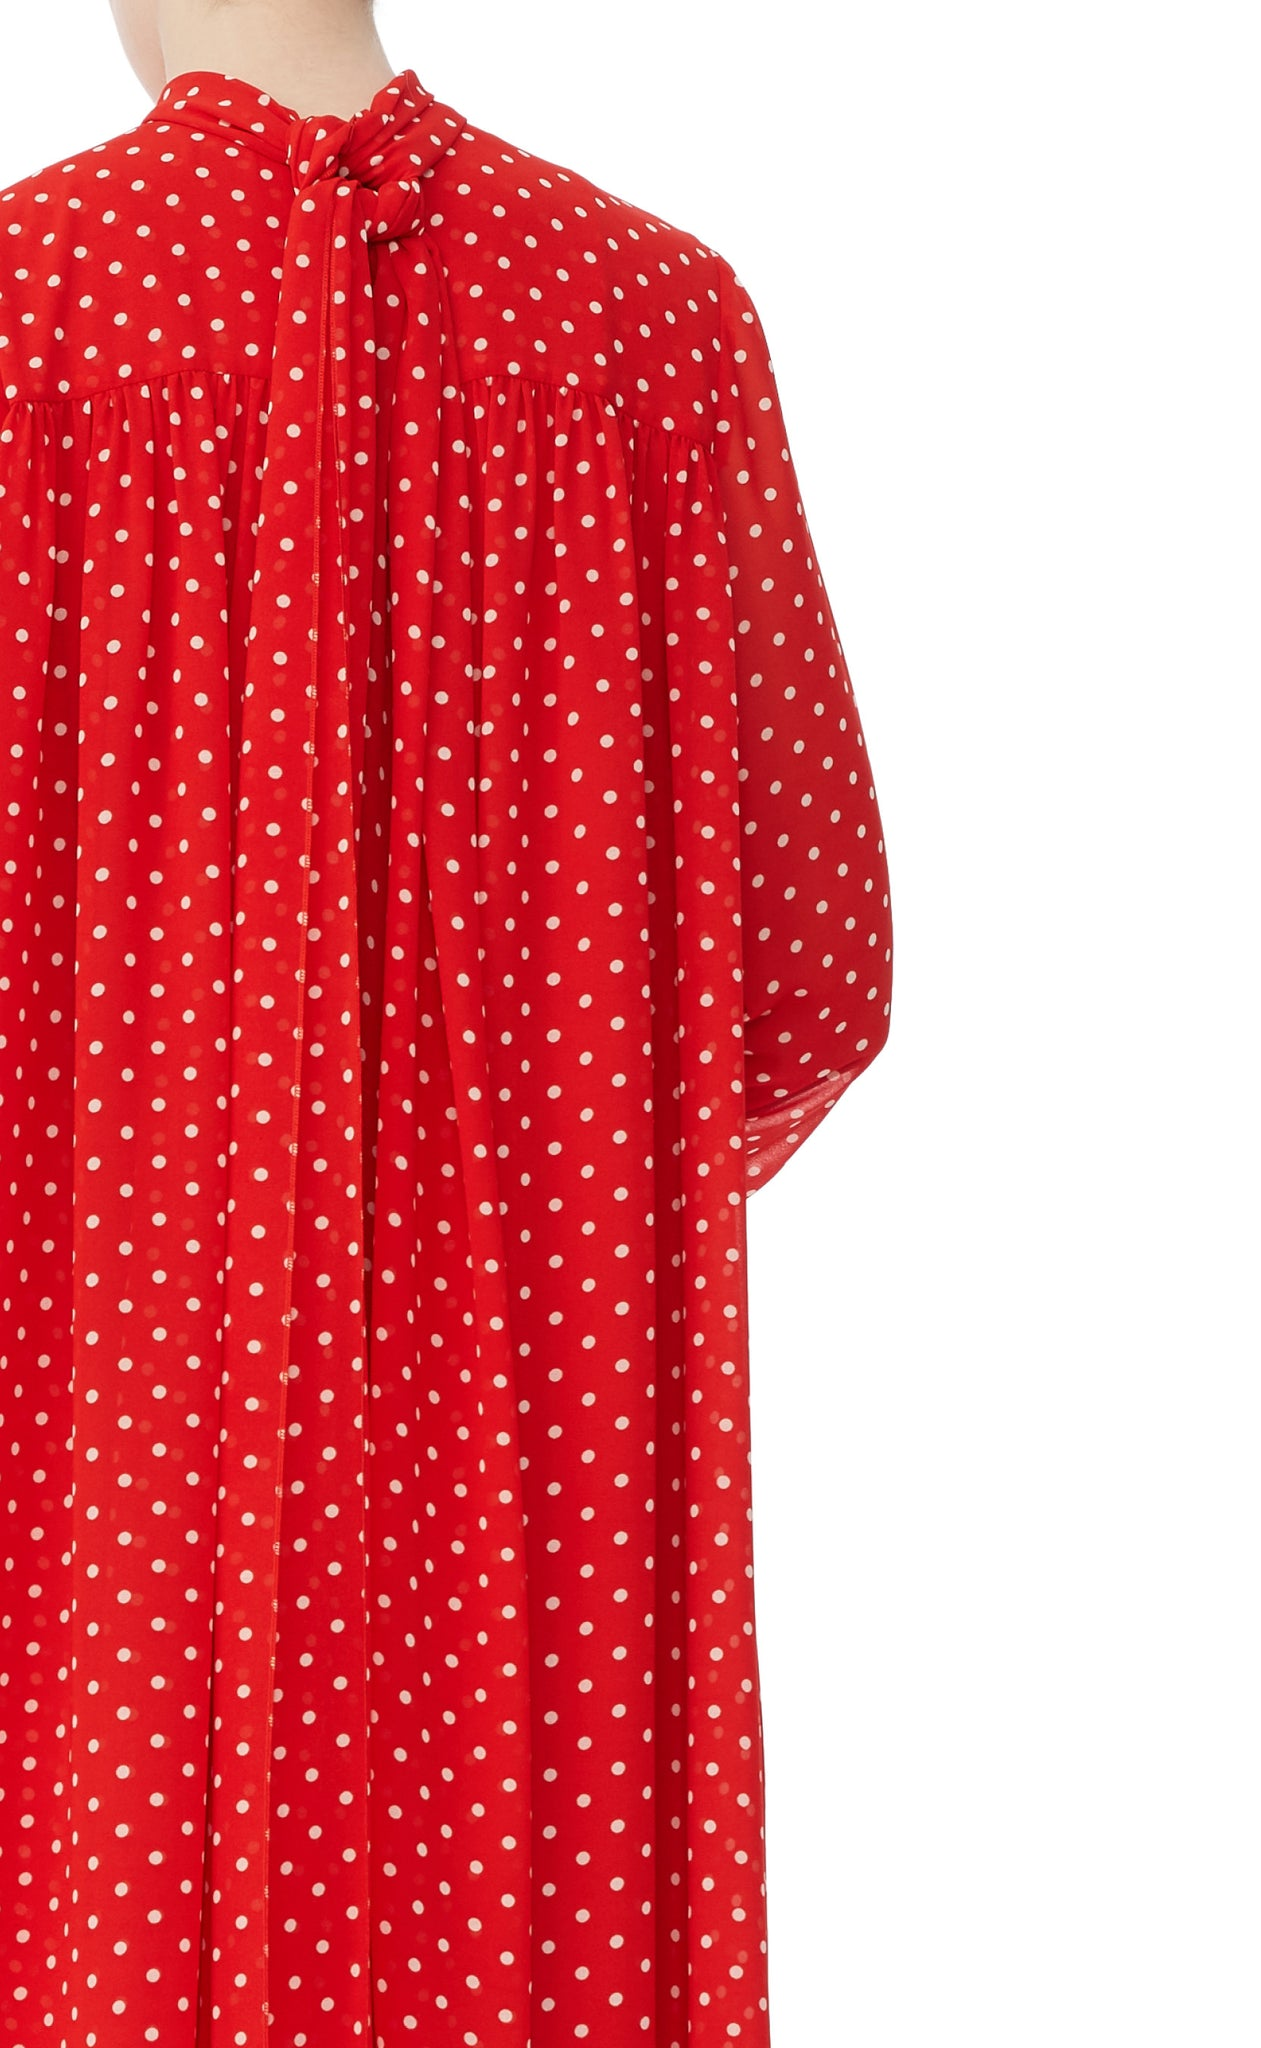 editions de robes SS17 collection cocktail Joline red and white dot dress